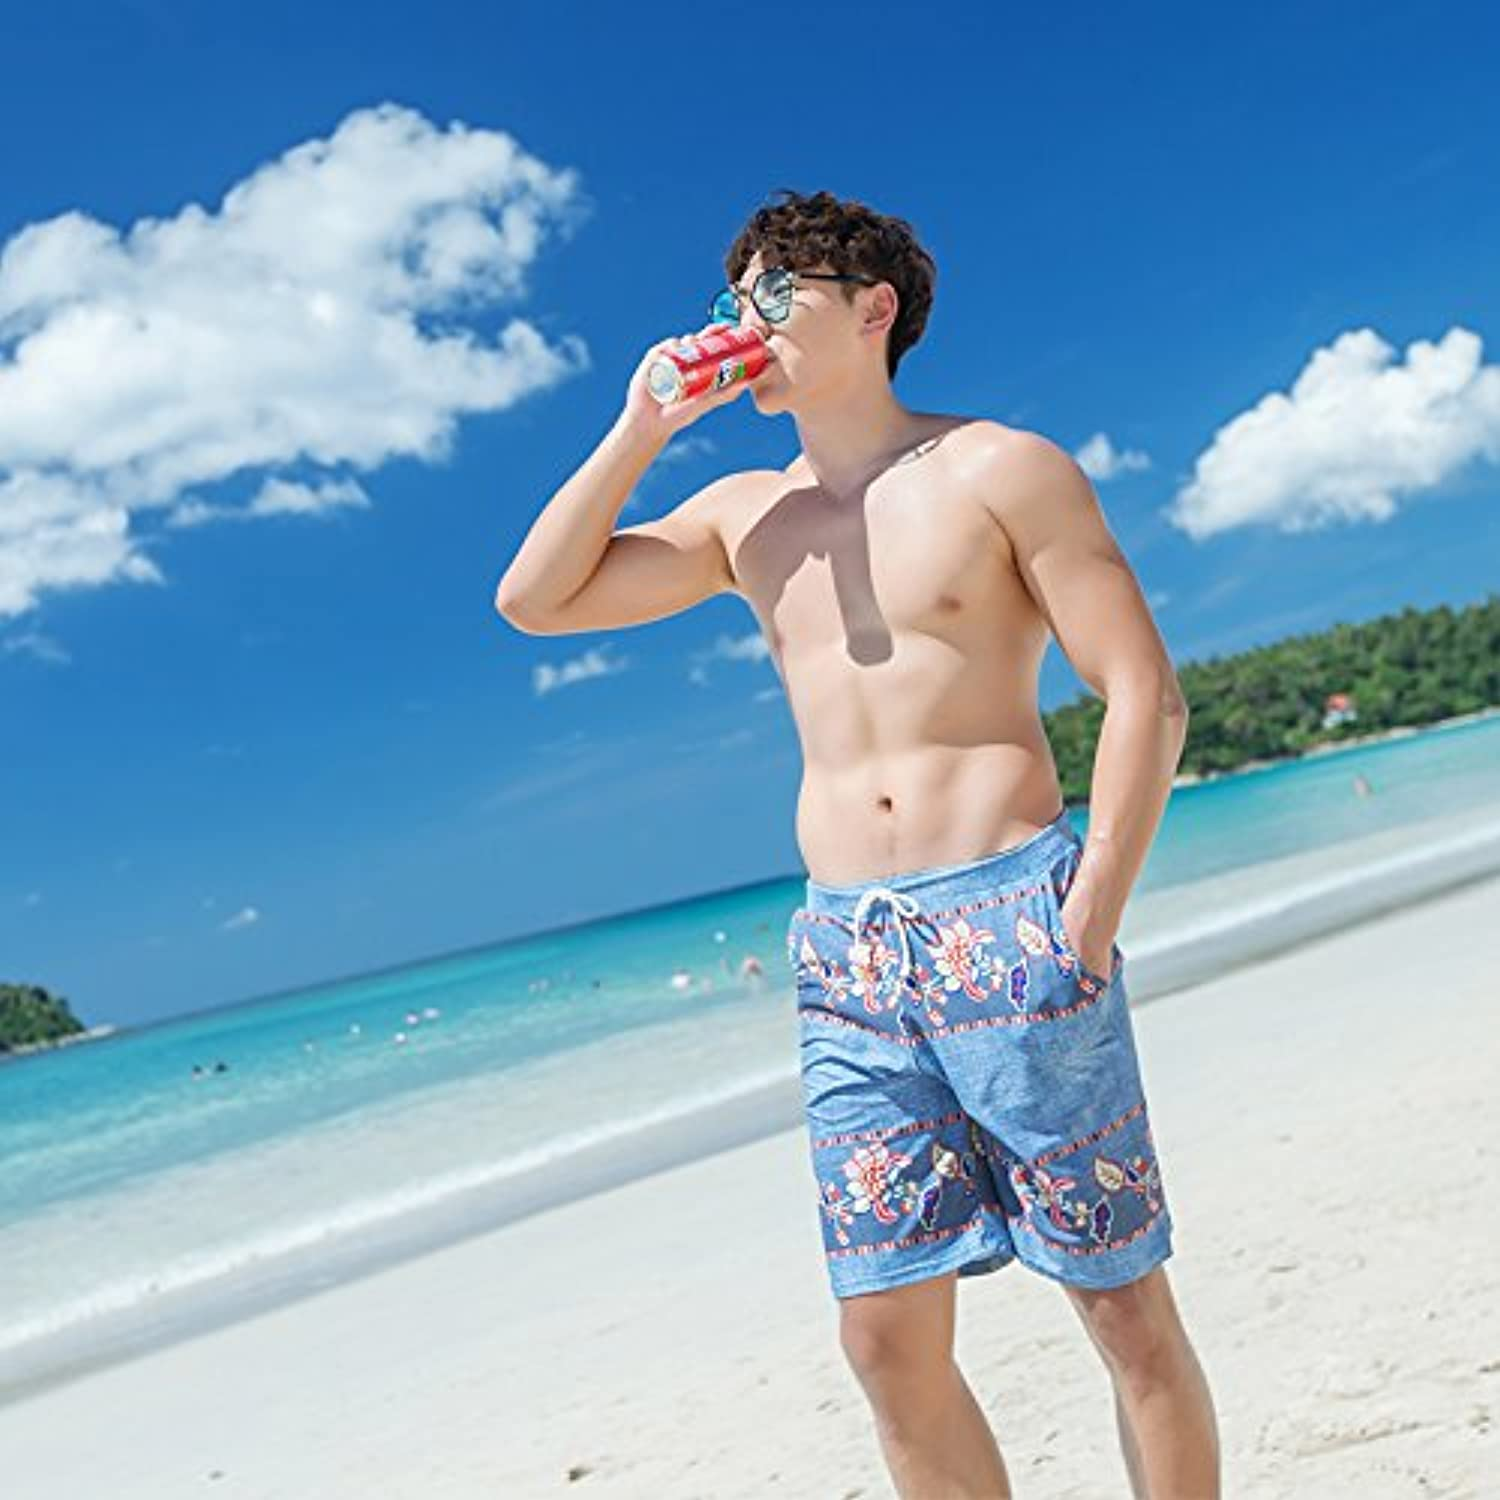 HAIYOUVK Couples swimwear comfortable male beach pants conservative thin cover belly belly piece skirt steel plate gather swimwear female